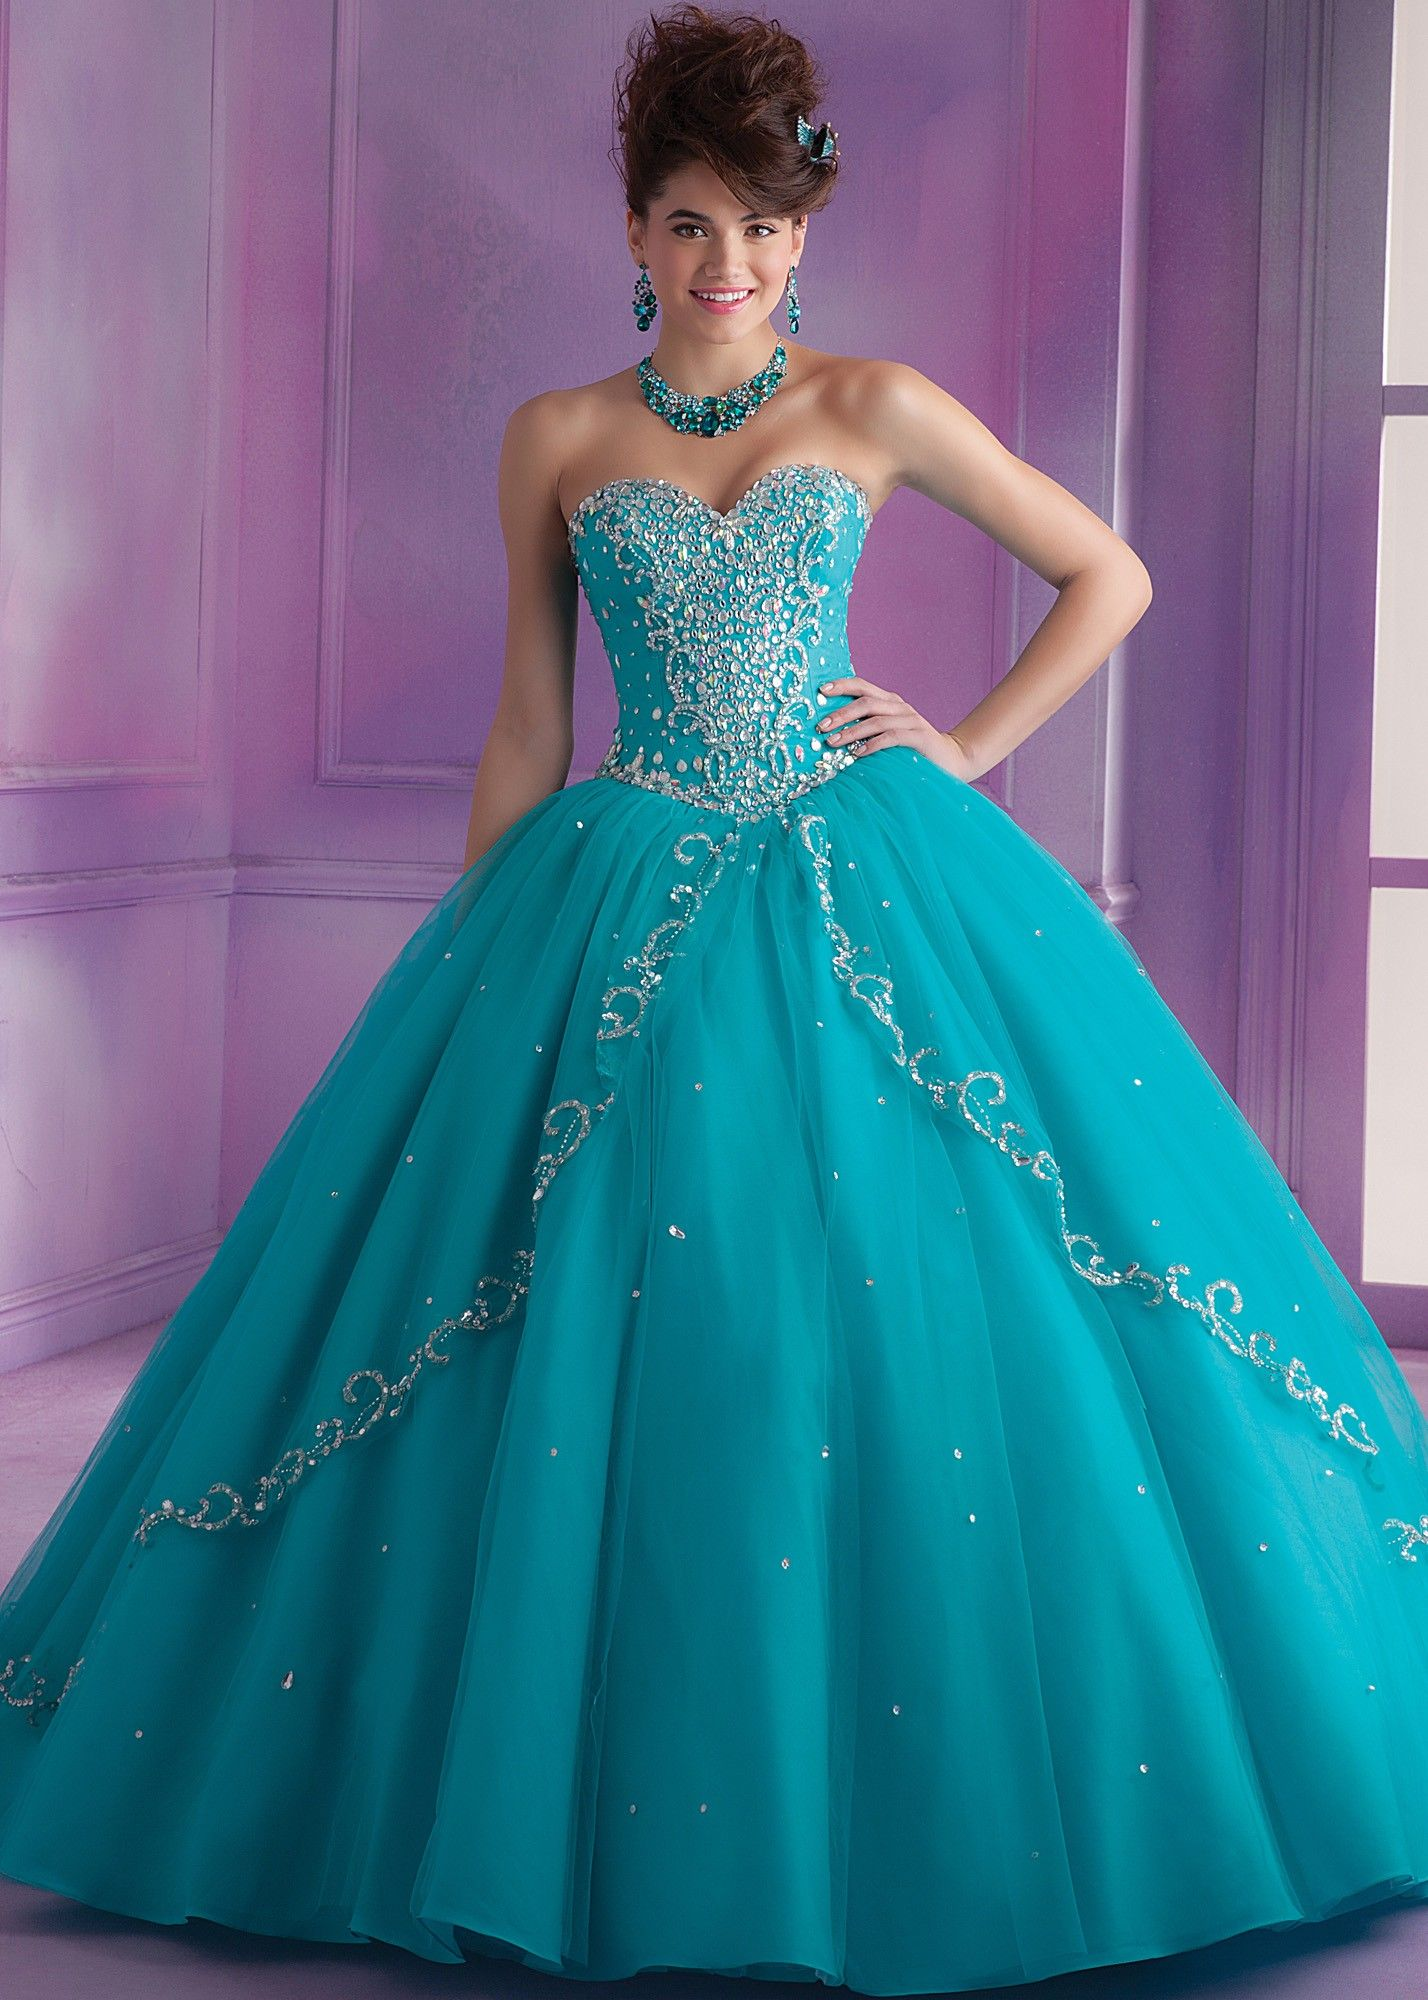 122524a9ea0 capri quinceanera dress vizcaya - Google Search